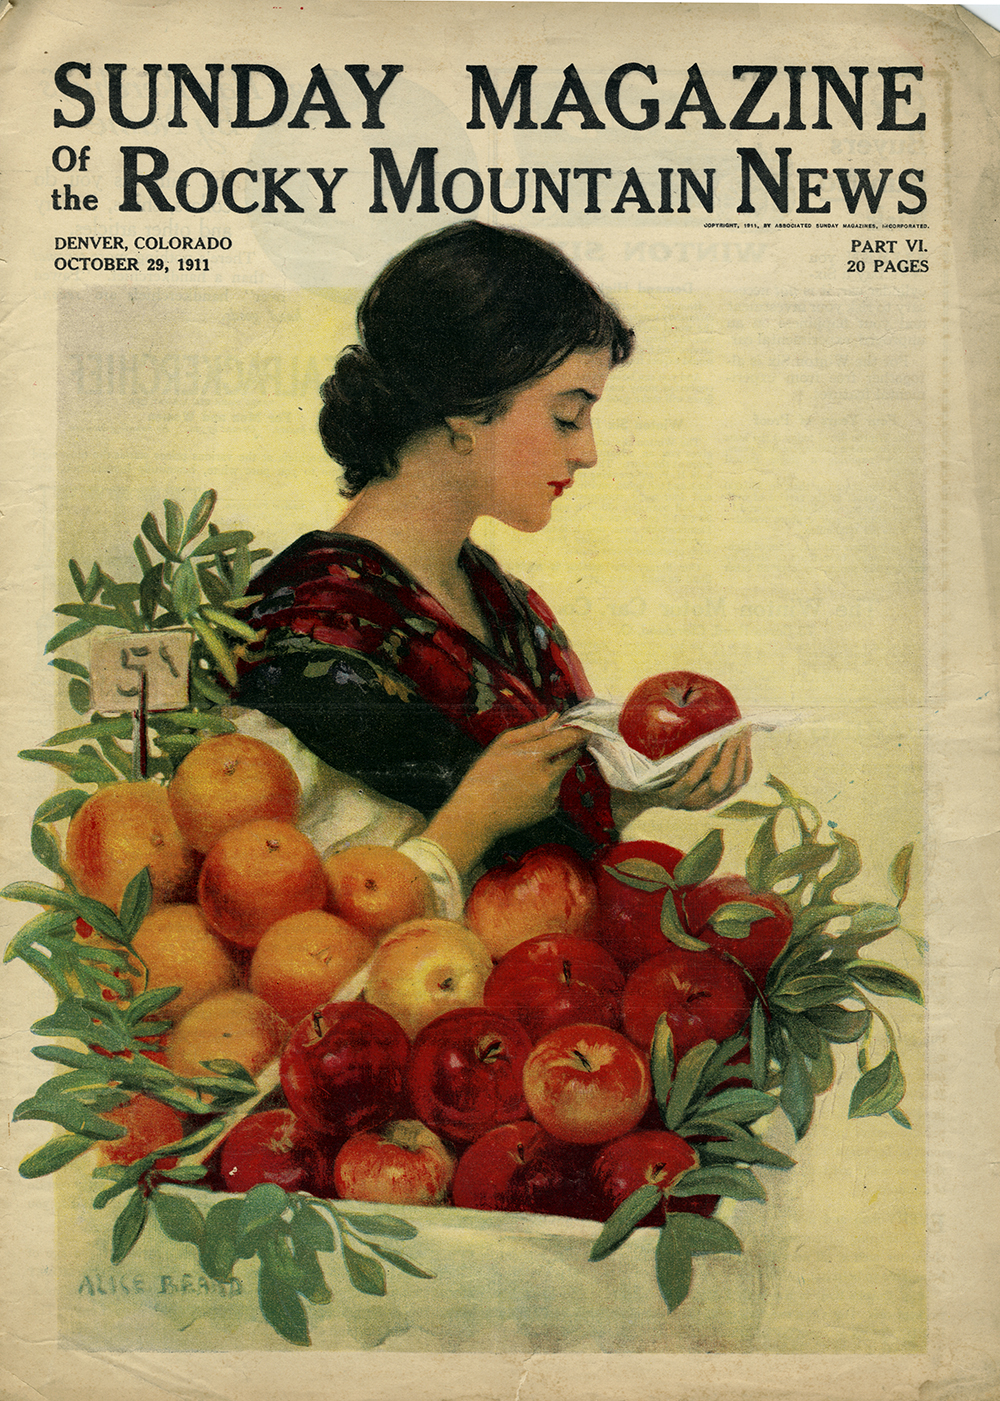 Alice Beard, Cover Illustration. Sunday Magazine of the Rocky Mountain News. October 29, 1911.